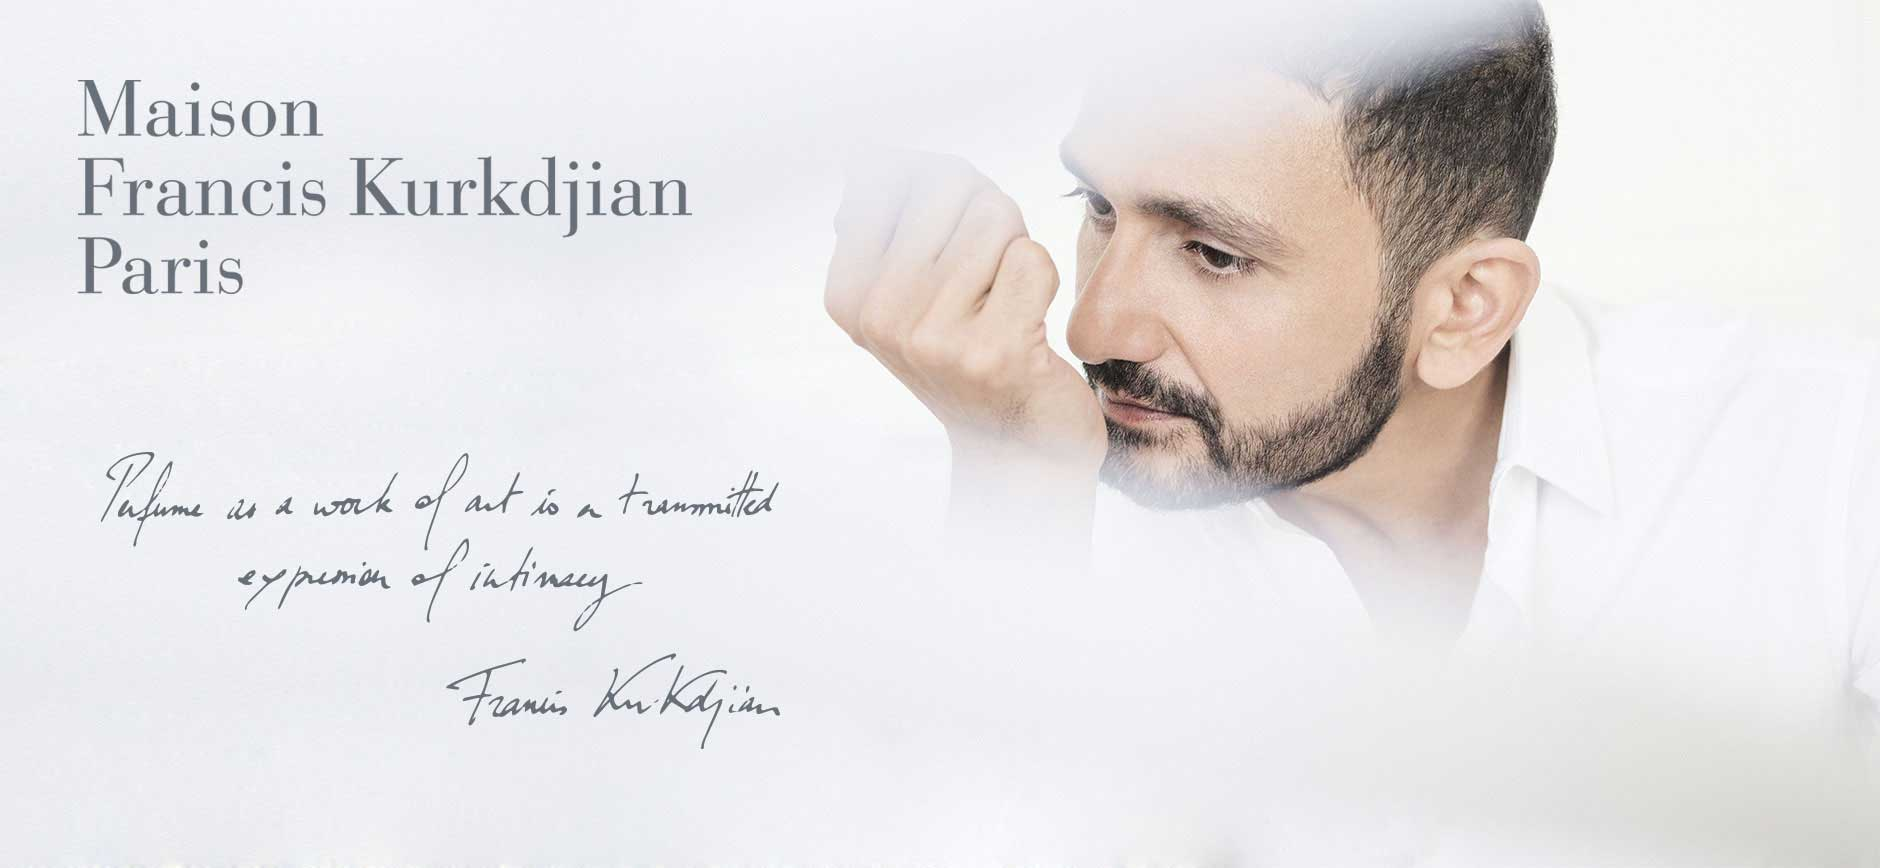 Maison Francis Kurkdjian Paris: Perfume as a work of art is a transmitted expression of intamacy - Francis Kurkdjian